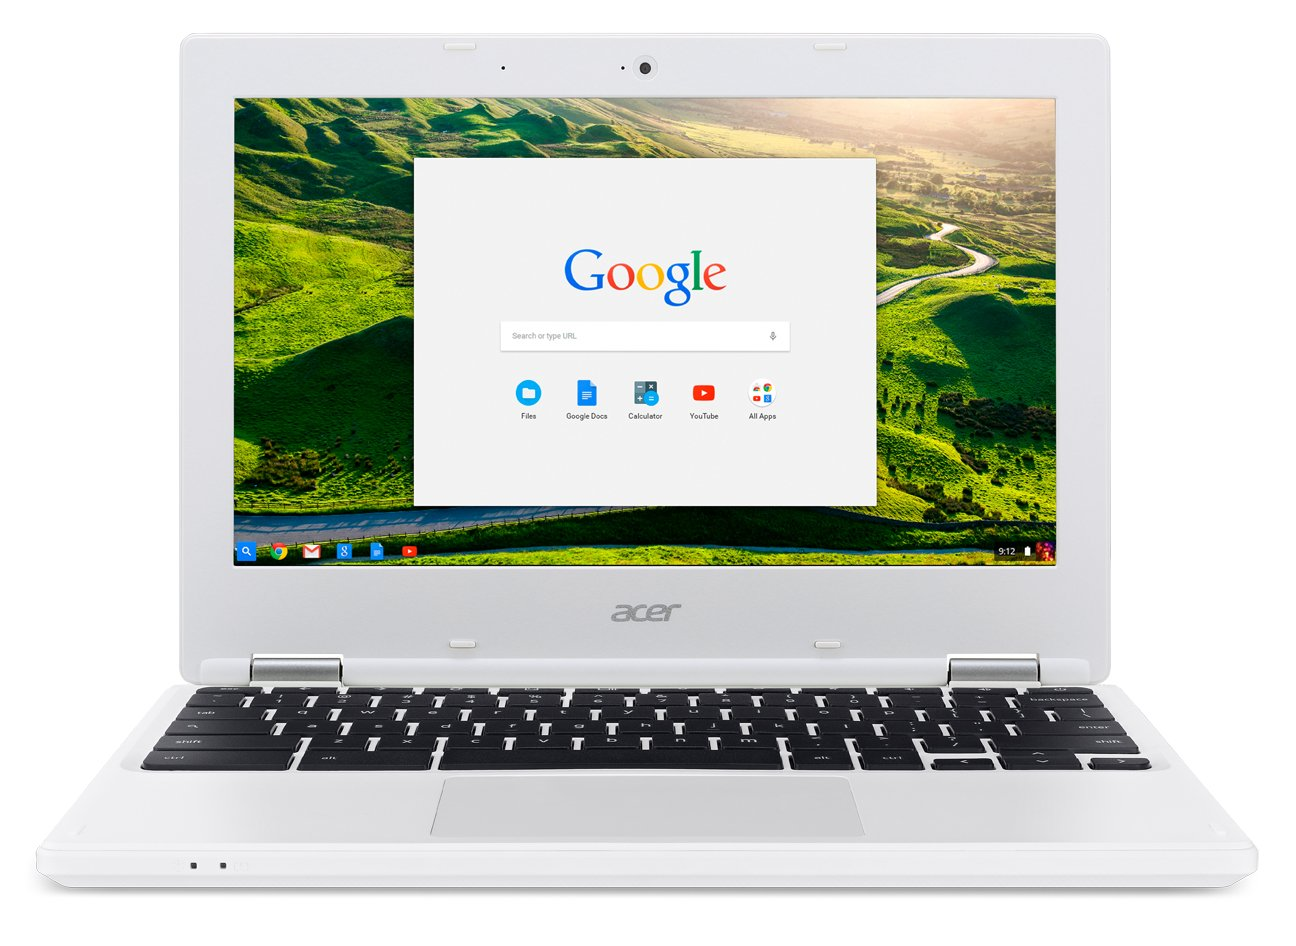 The Acer CB3-131 is one of the best-selling Chromebooks on the 'net- and it makes a perfect Christmas gift.